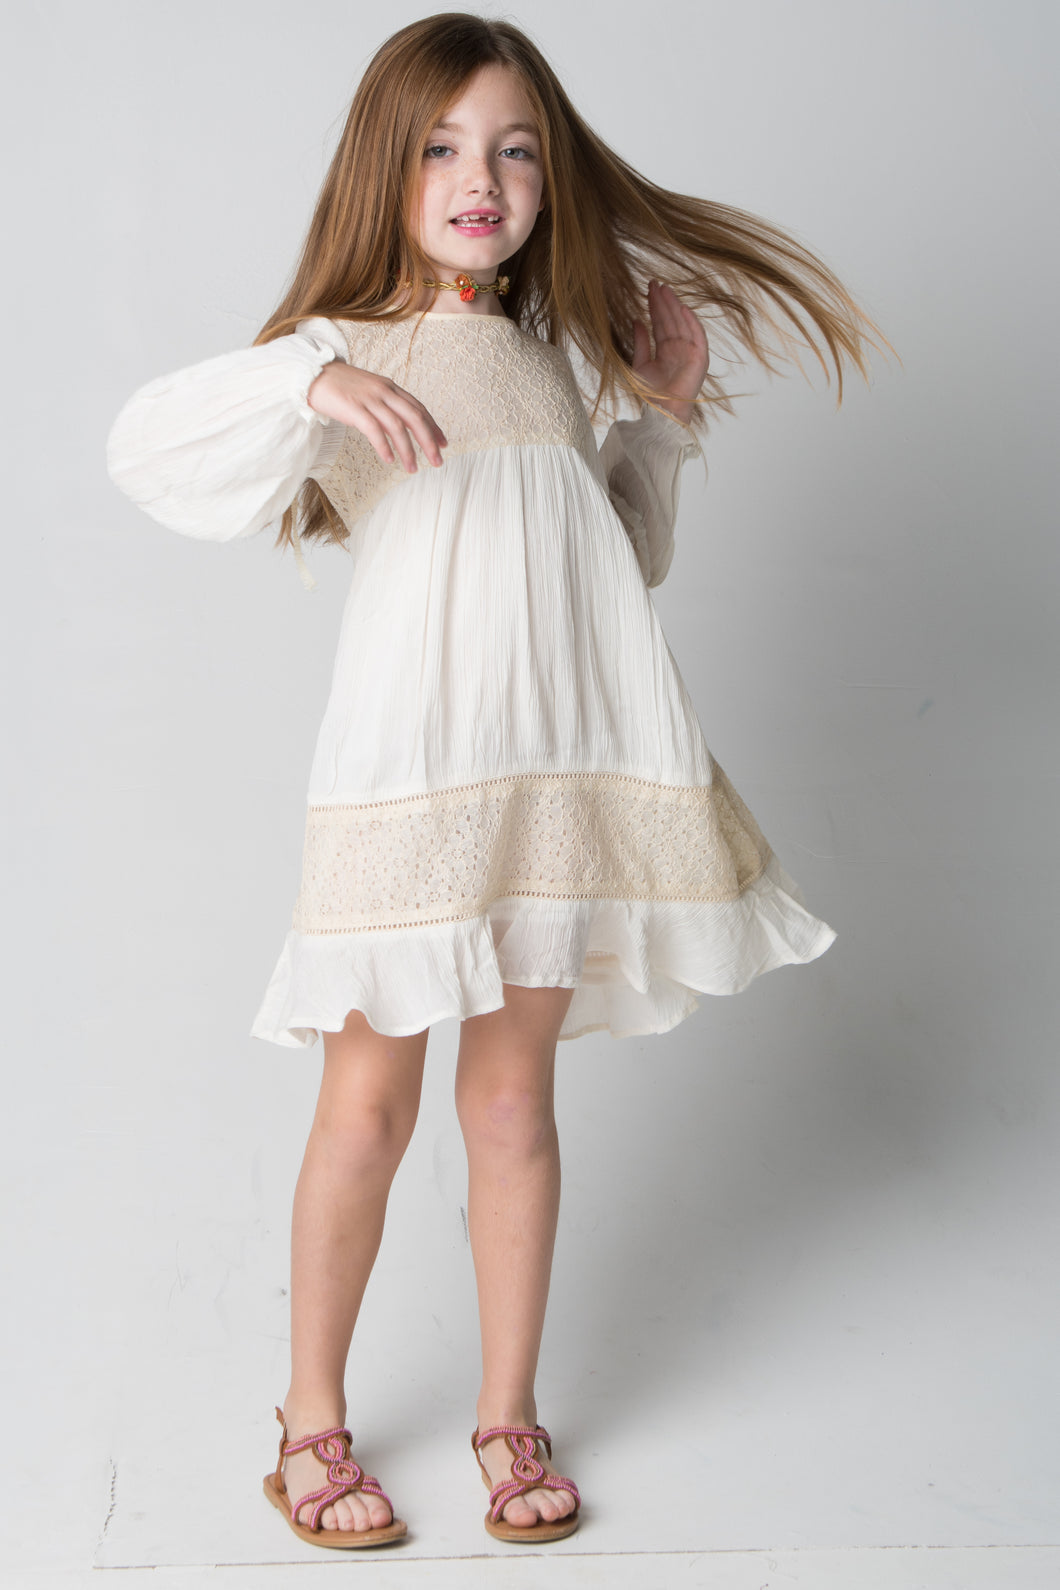 Ivory Lace Detail Dress - Kids Wholesale Boutique Clothing, Dress - Girls Dresses, Yo Baby Wholesale - Yo Baby